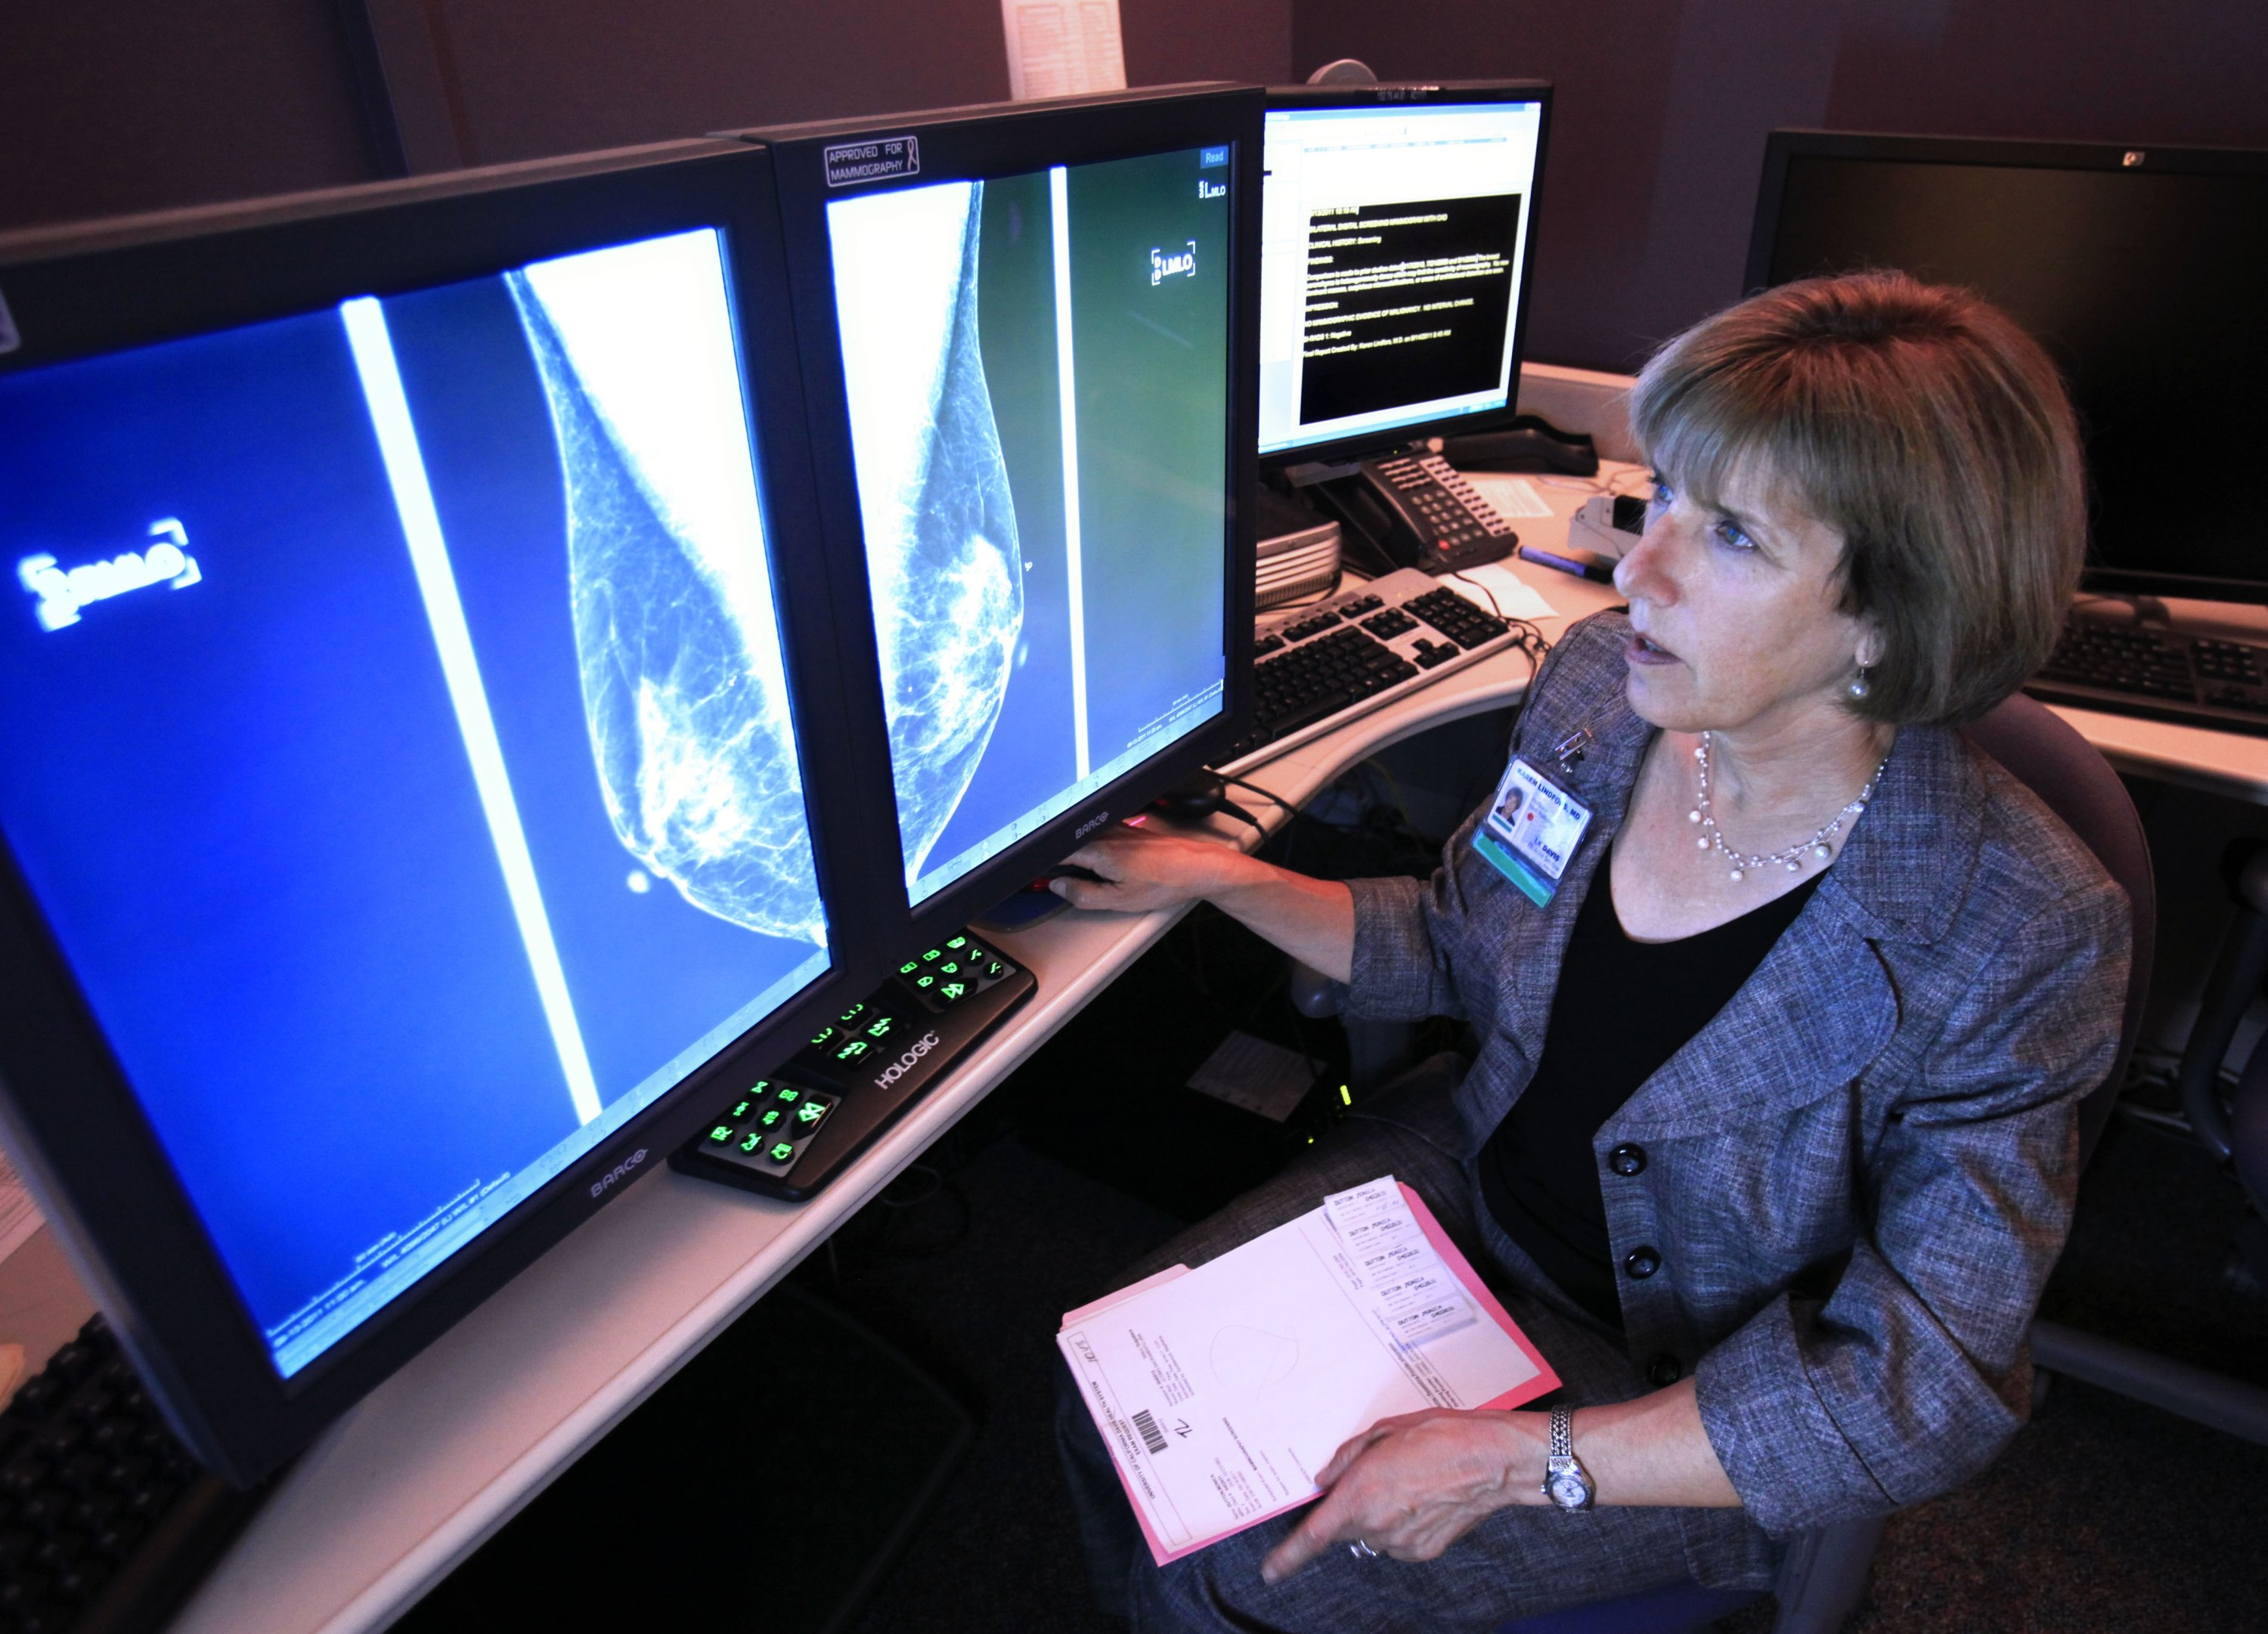 ln this photo taken Sept. 14, 2011, Dr. Karen Lindsfor, a professor of radiology and chief of breast imaging at the University of California, Davis Medical Center, examines the mammogram of a patient with heterogeneously dense breast tissue,  in Sacramento, Calif. (AP Photo)